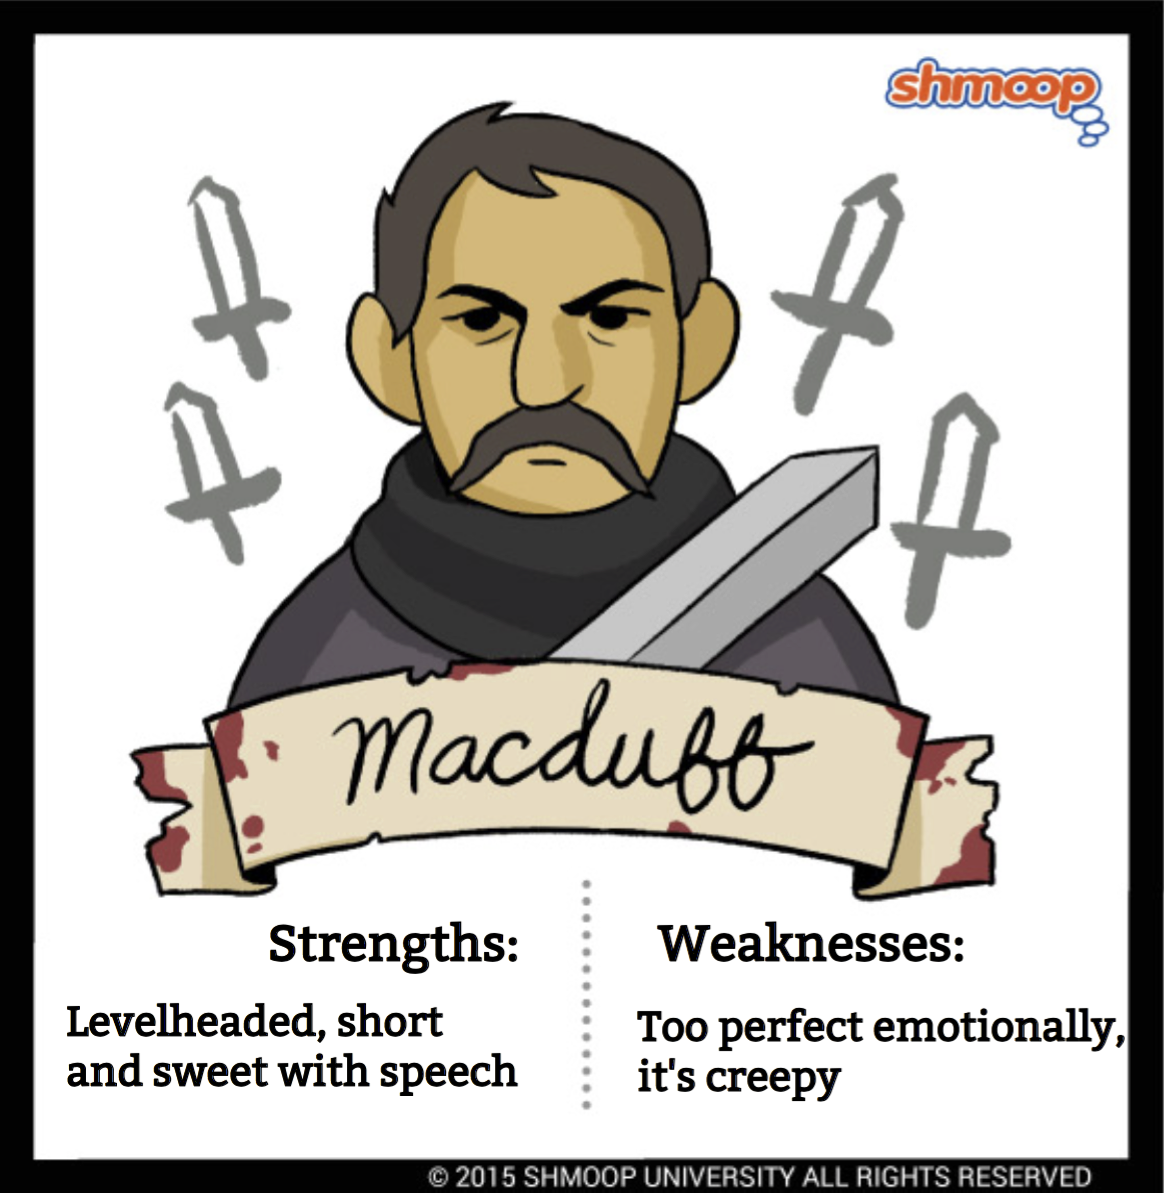 an evaluation of macbeths strengths and weaknesses in the play macbeth